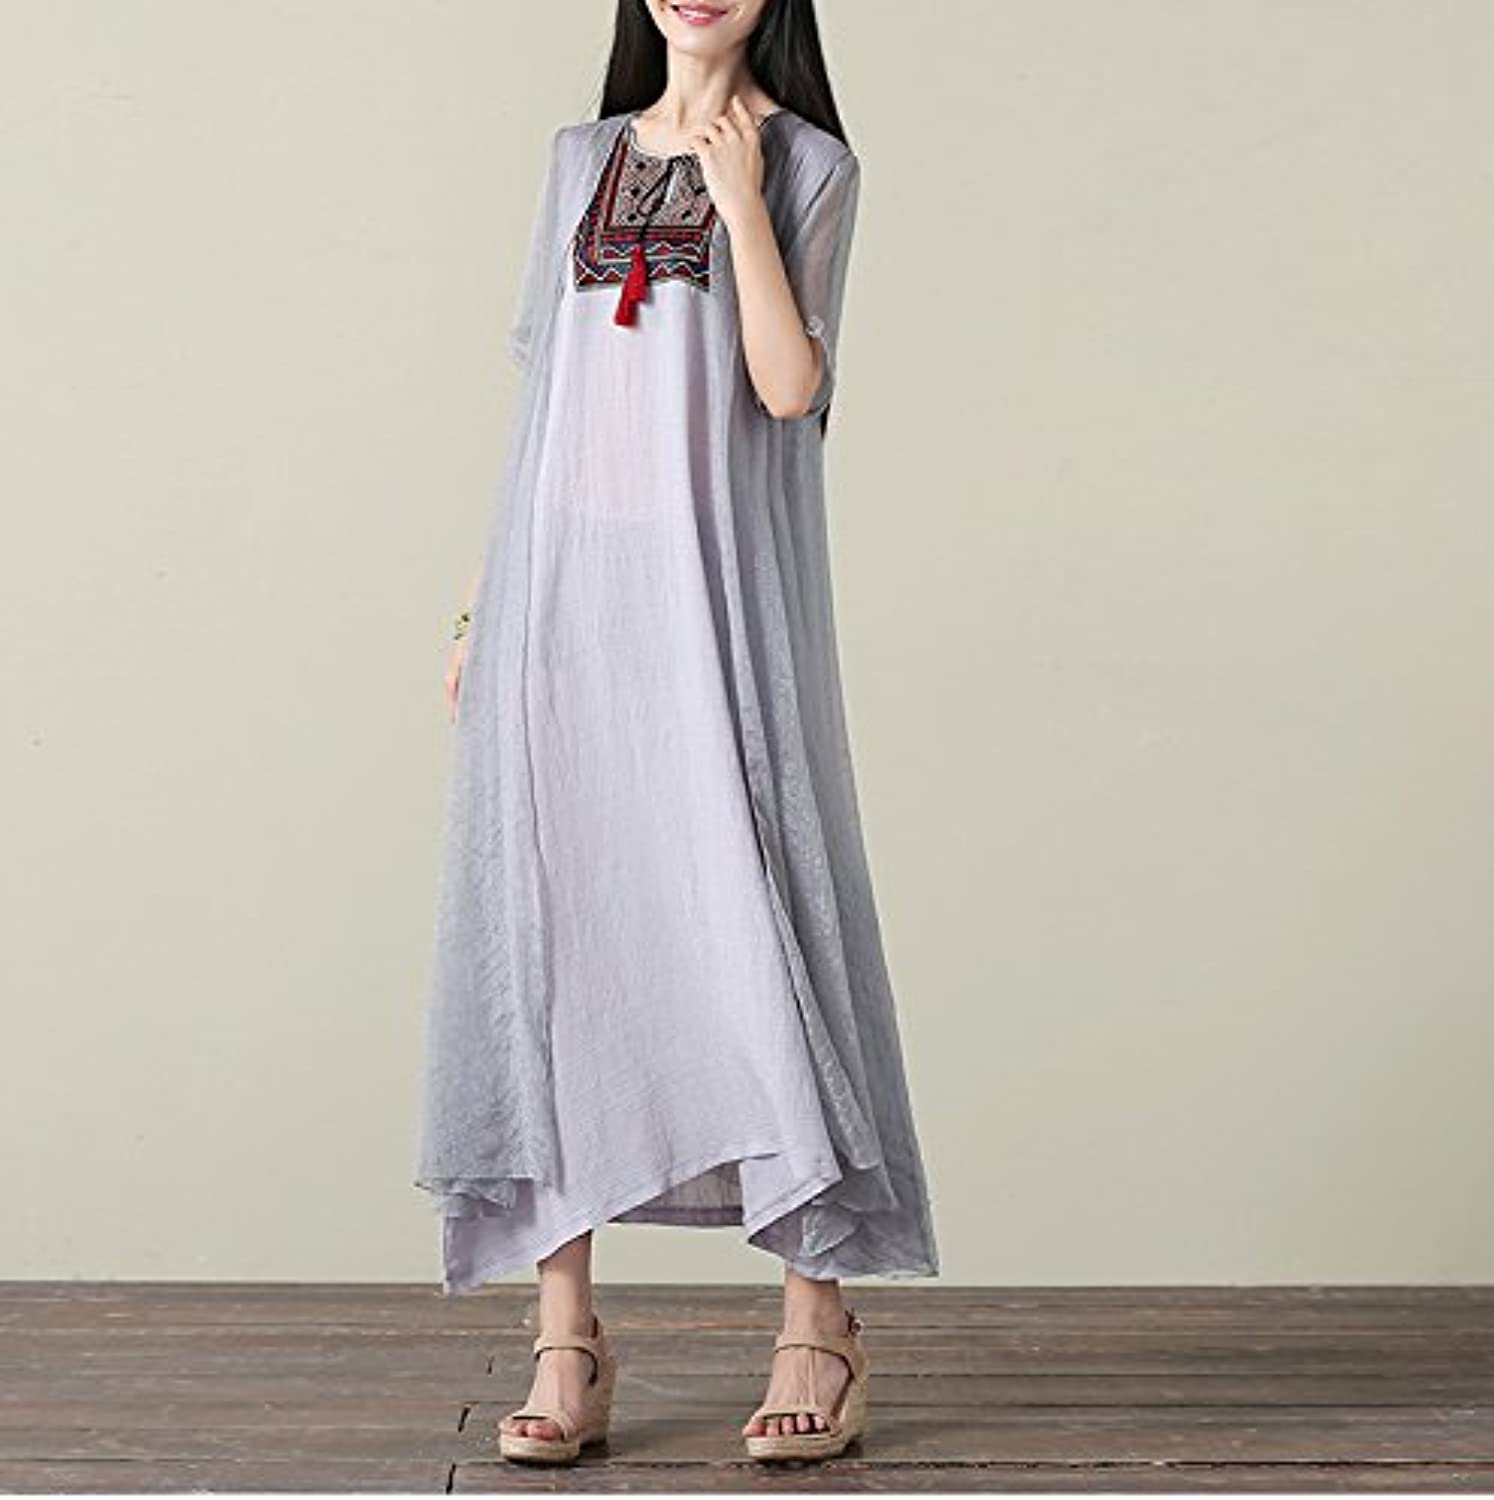 XIURONG Female Summer Embroidery Silk Flax Dress Big Code Loose Dress Long Skirt